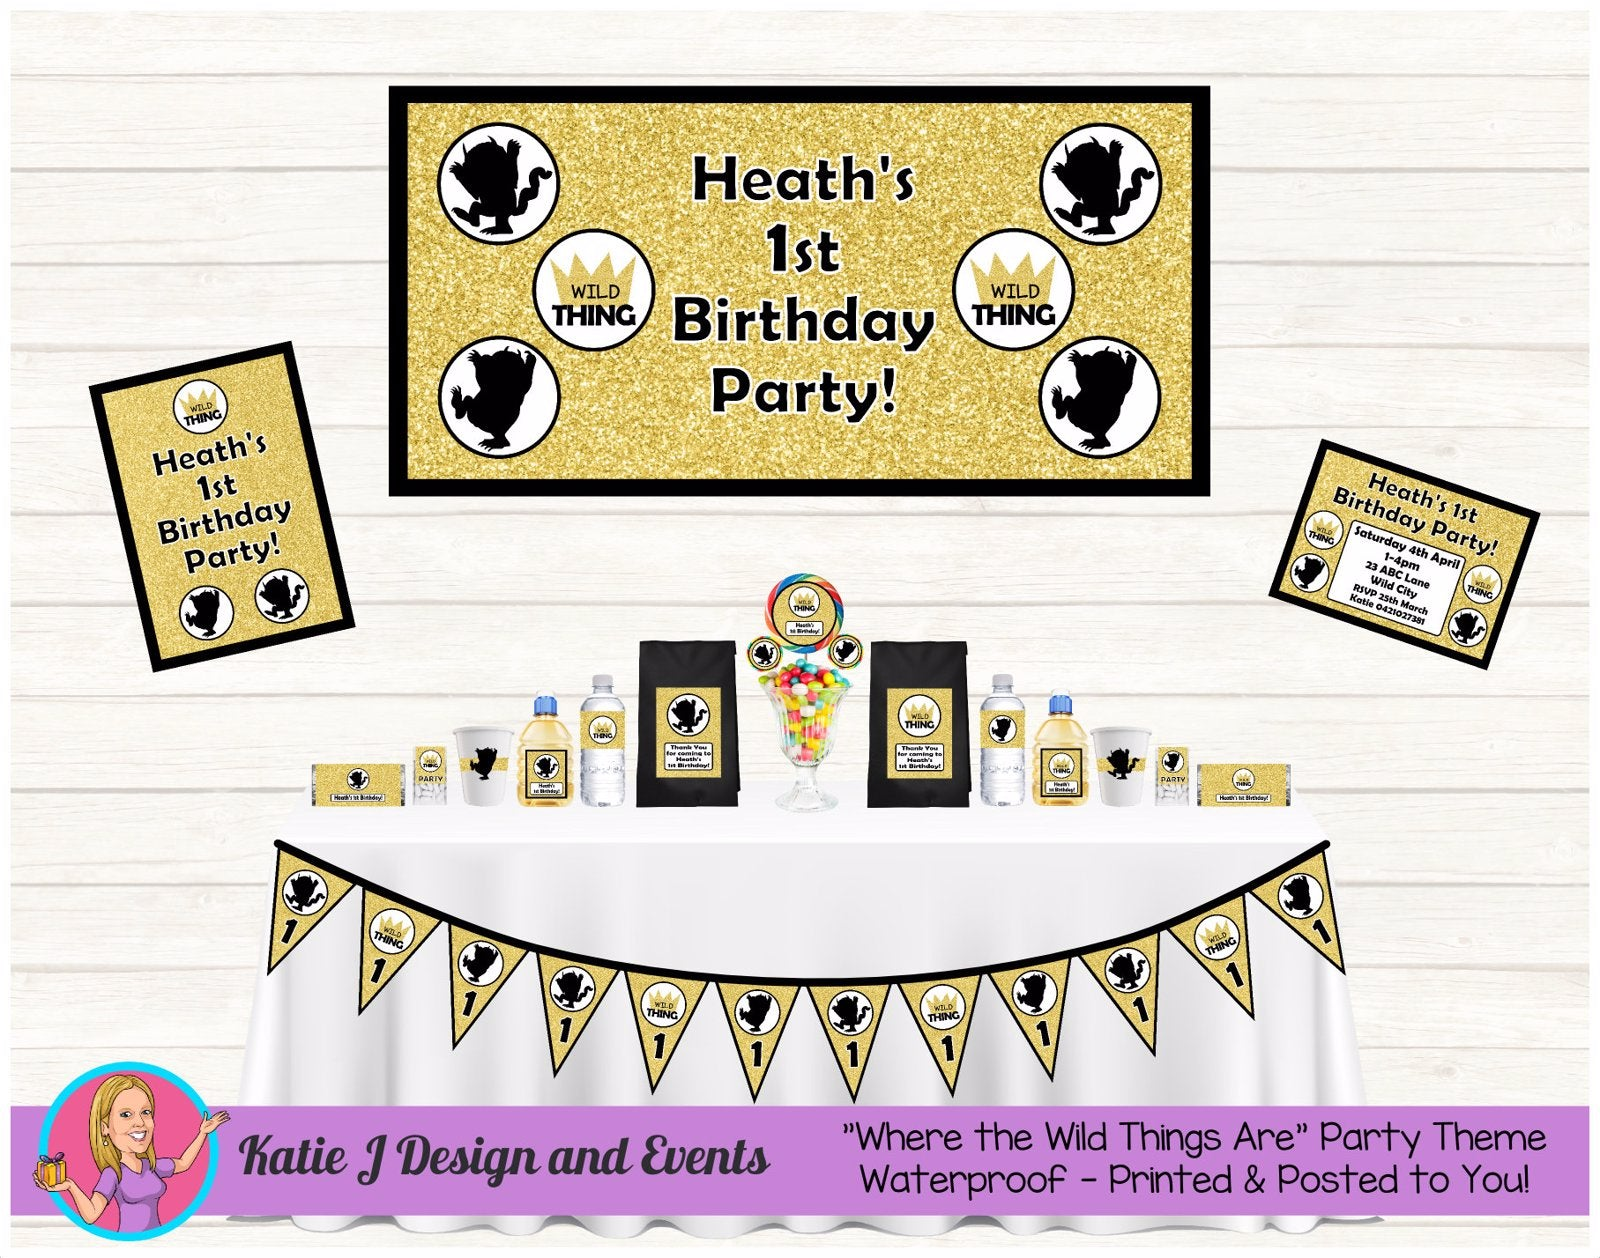 Where the Wild Things Are Party Decorations Supplies Ideas